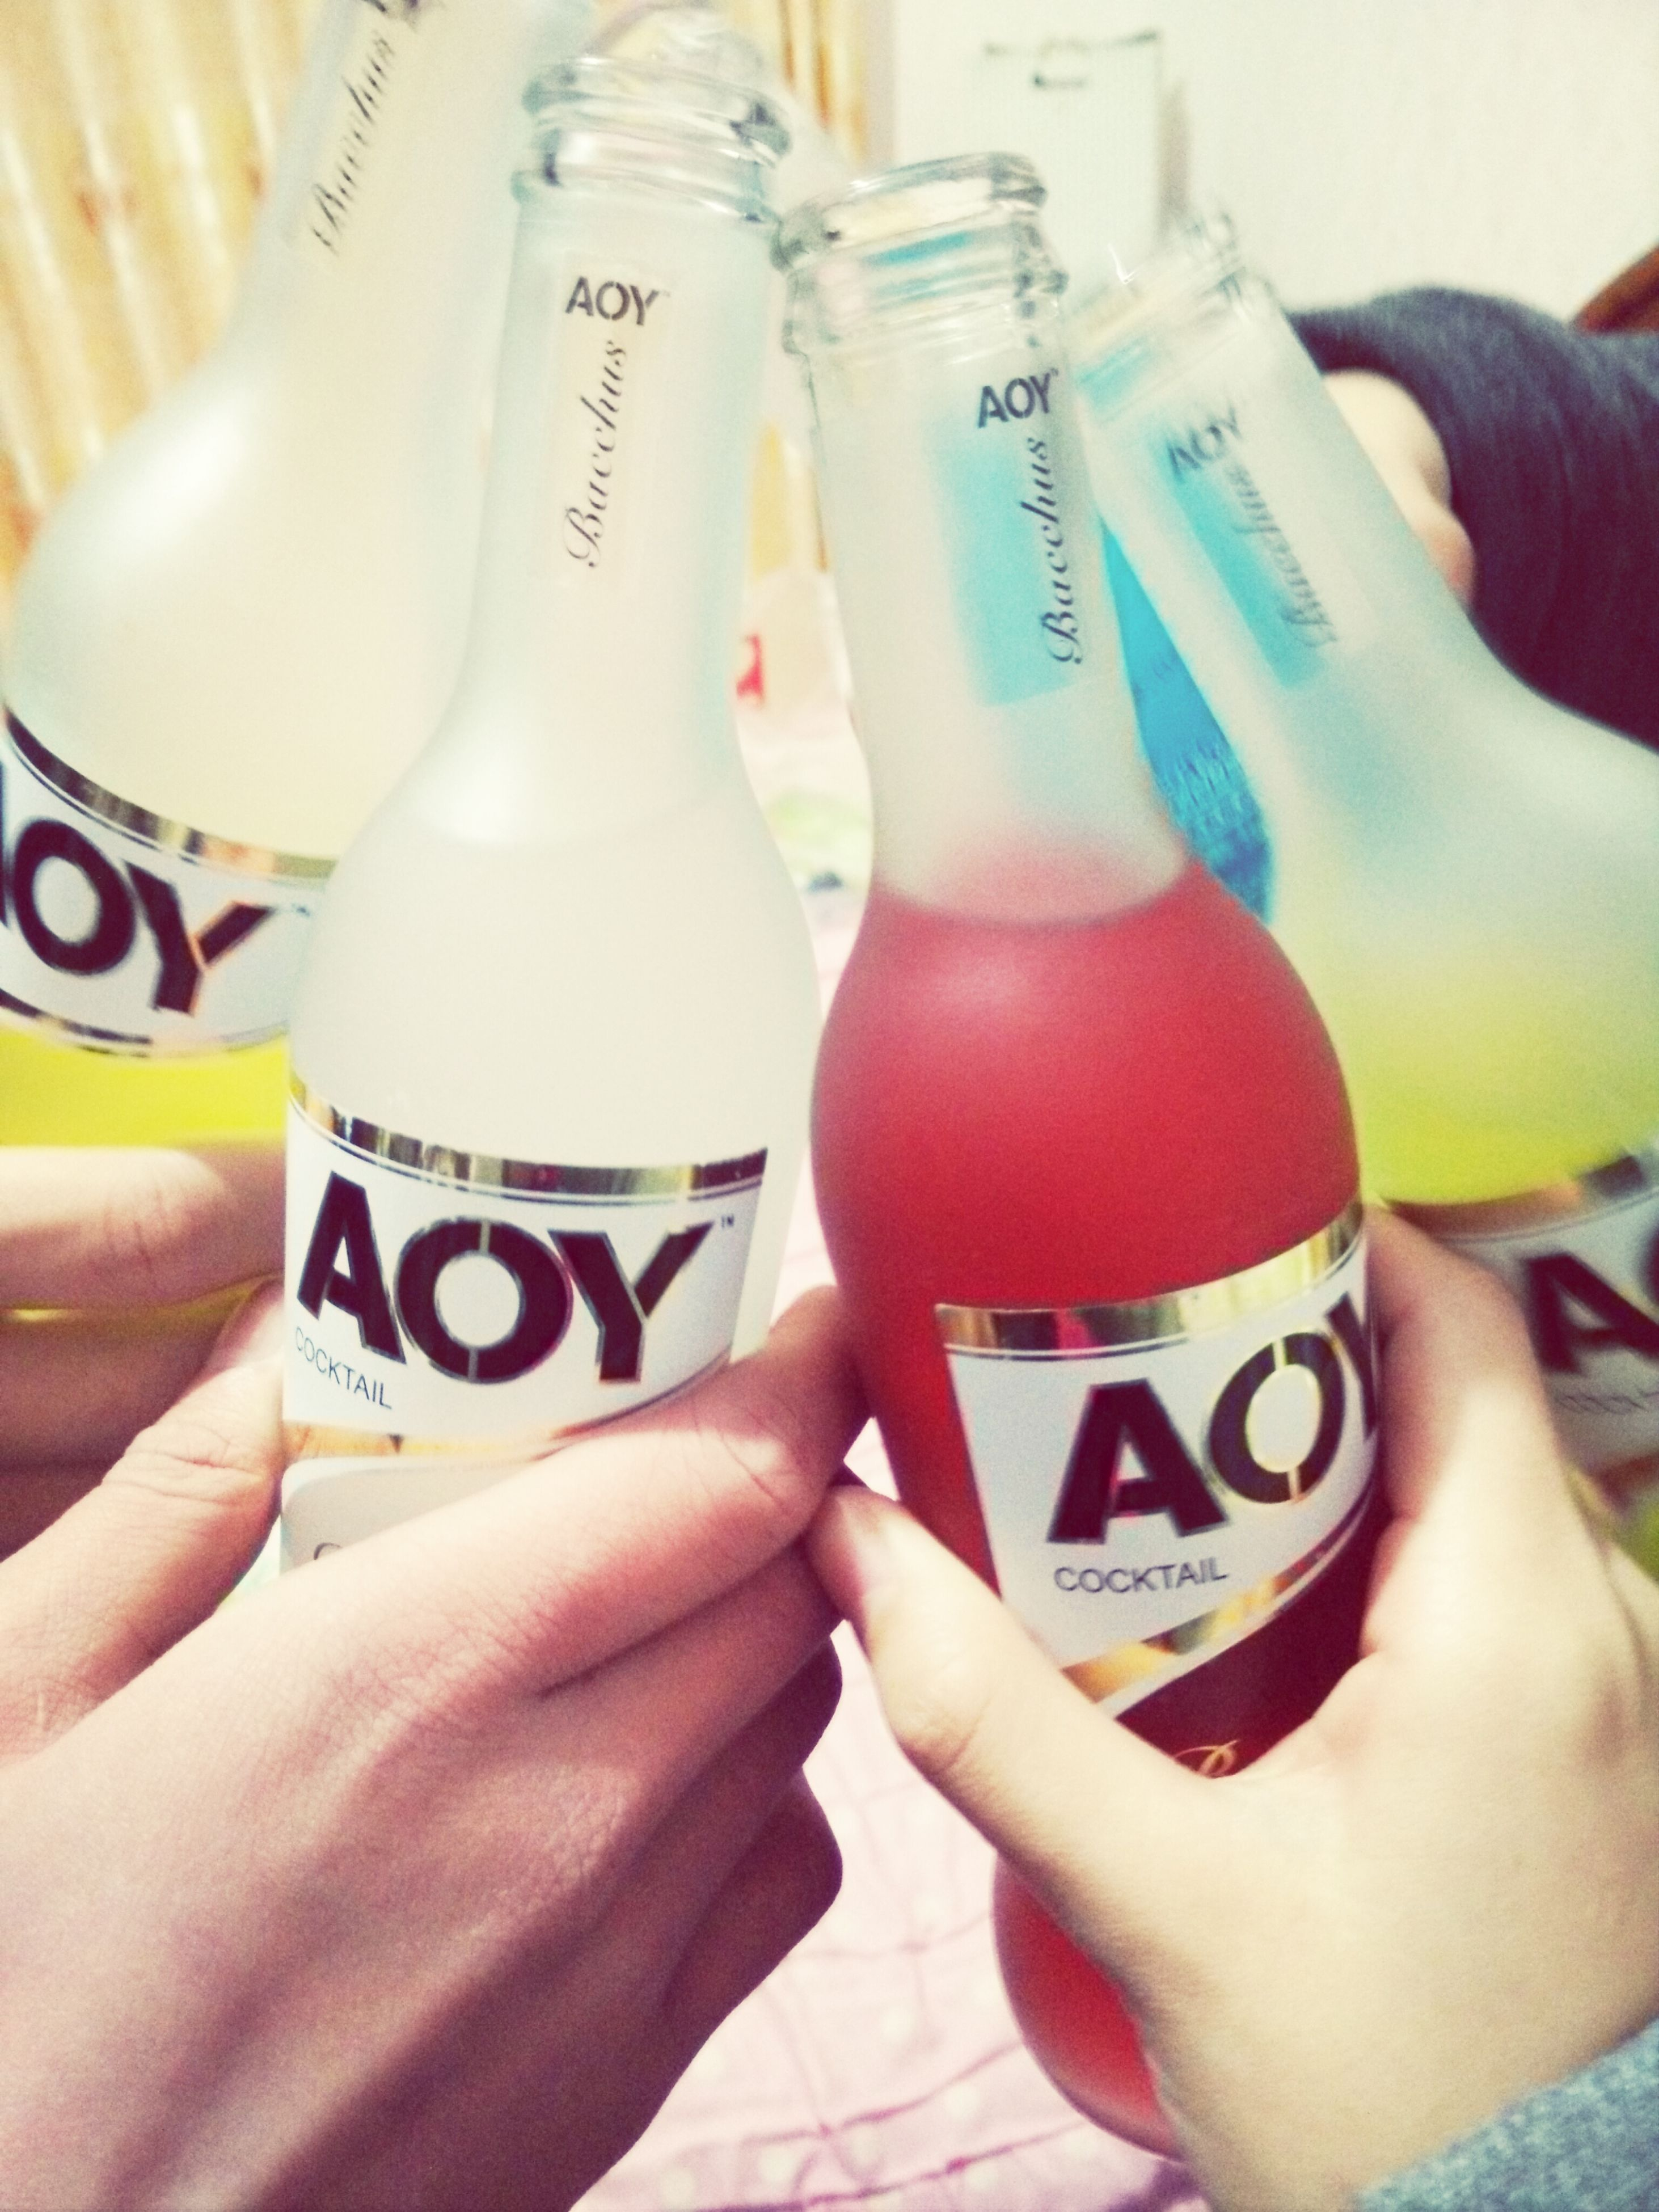 indoors, text, person, western script, lifestyles, communication, holding, leisure activity, part of, close-up, red, high angle view, love, food and drink, human finger, nail polish